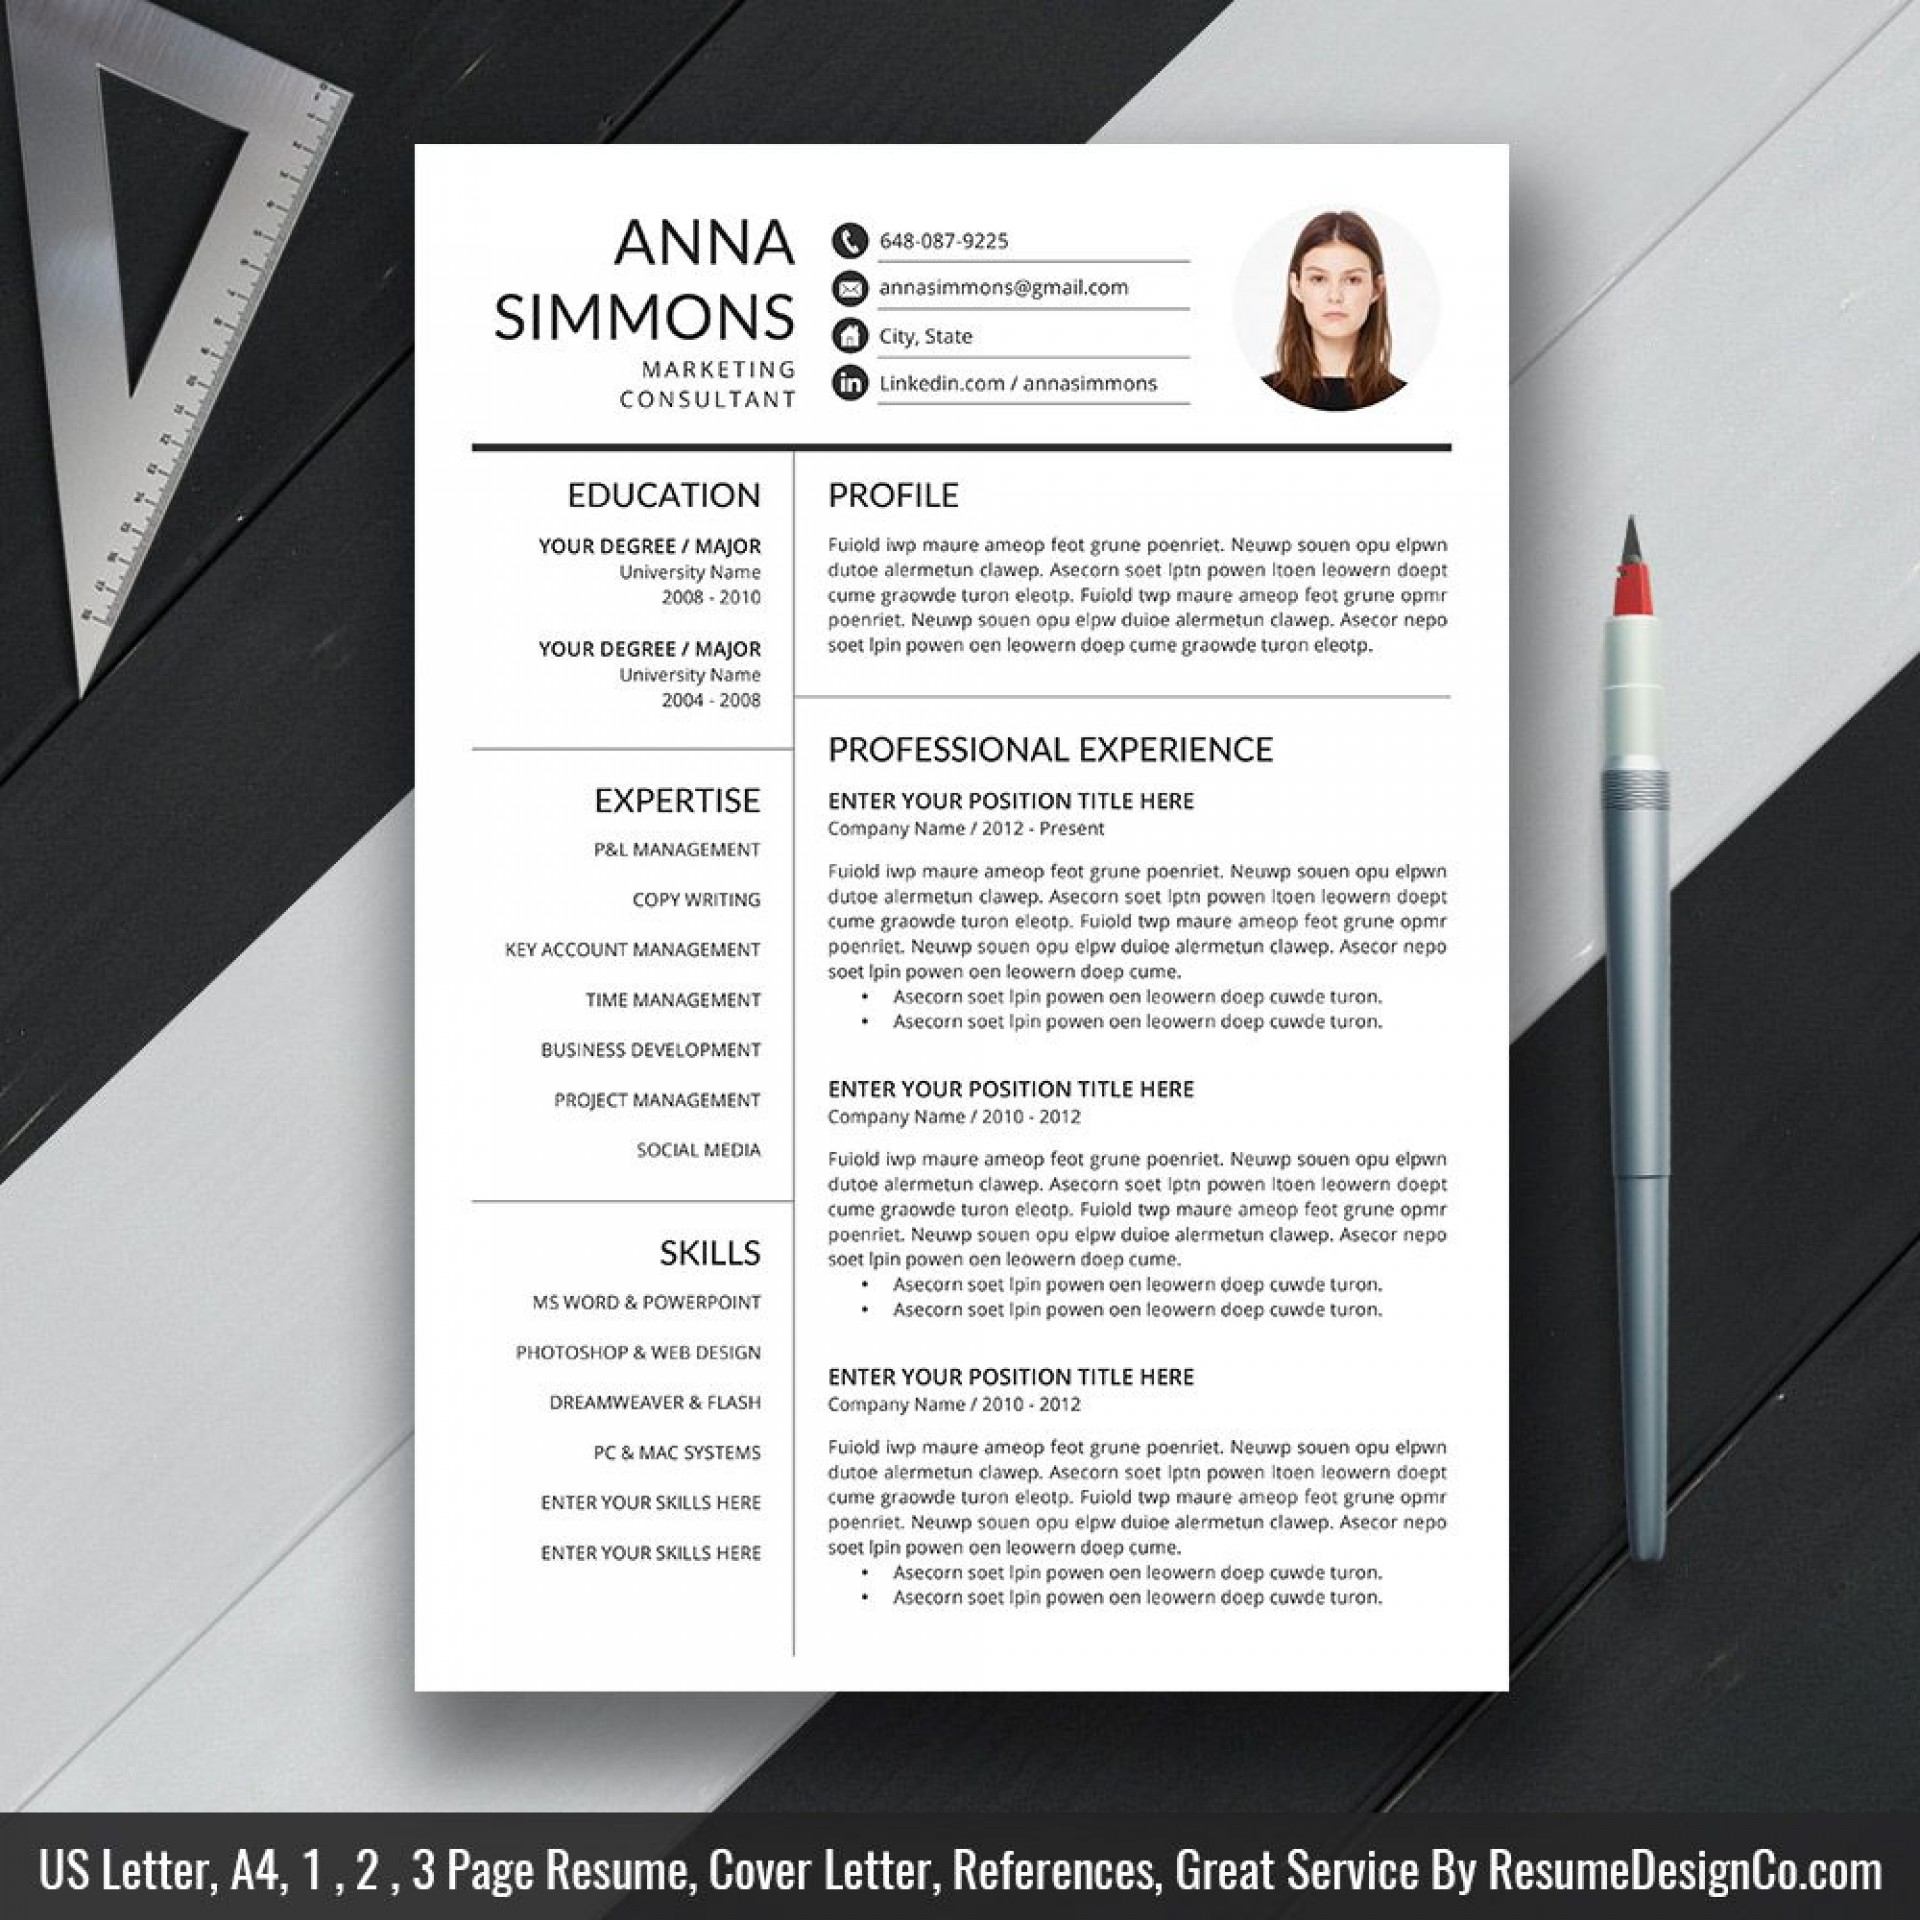 007 Archaicawful Resume Template Microsoft Word 2007 High Definition  In Office M1920